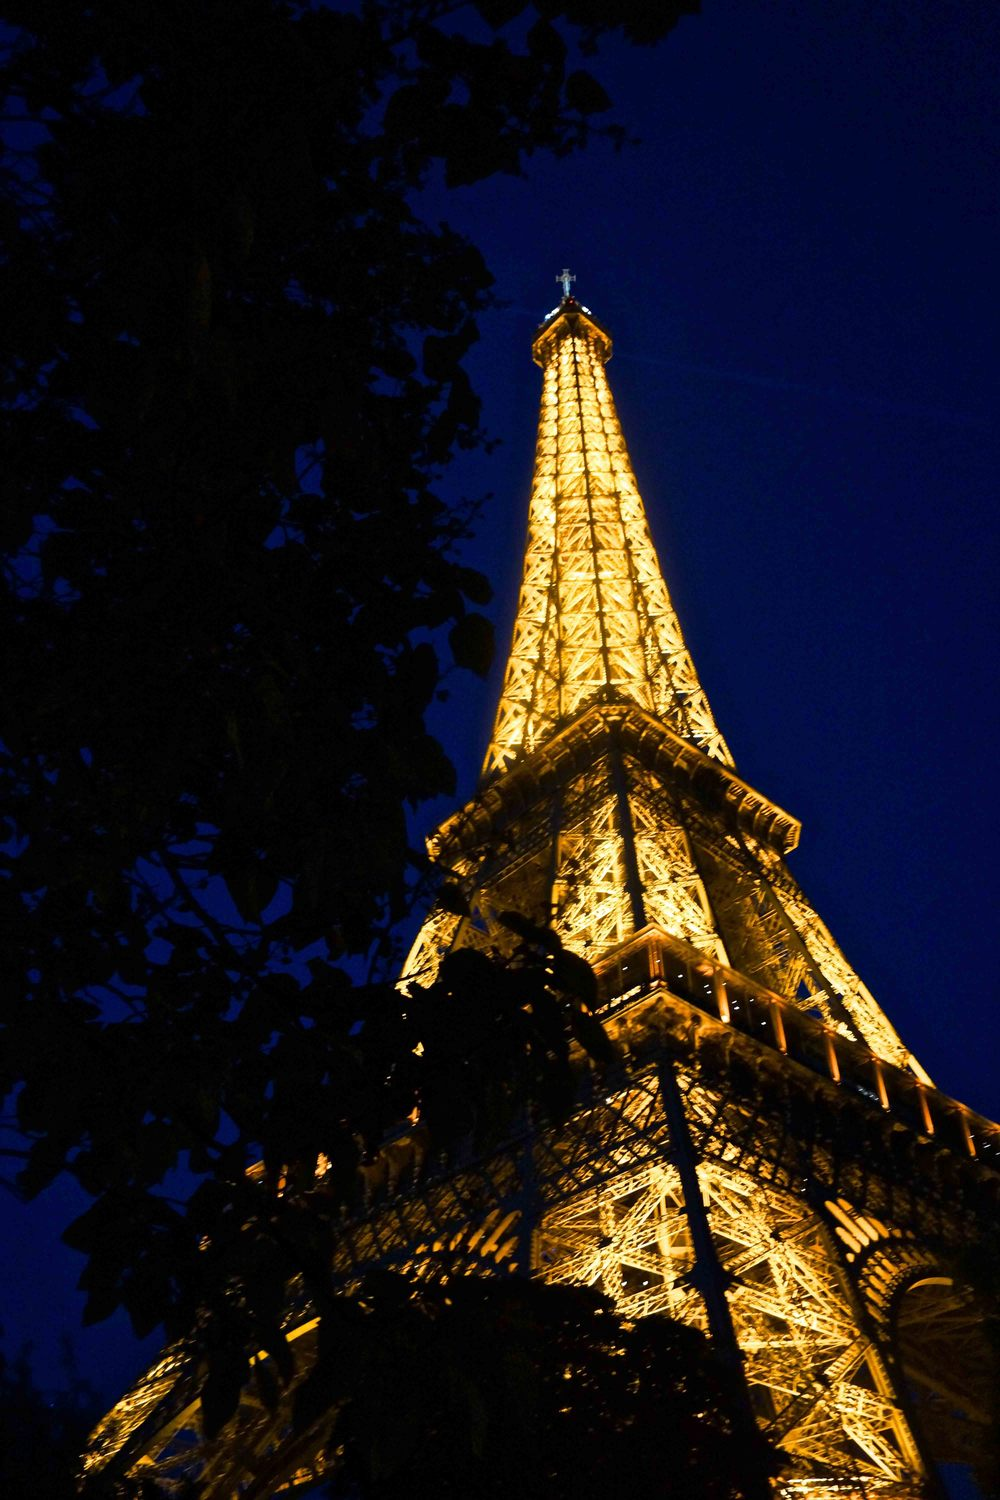 Eiffel Tower, Paris, July 2015